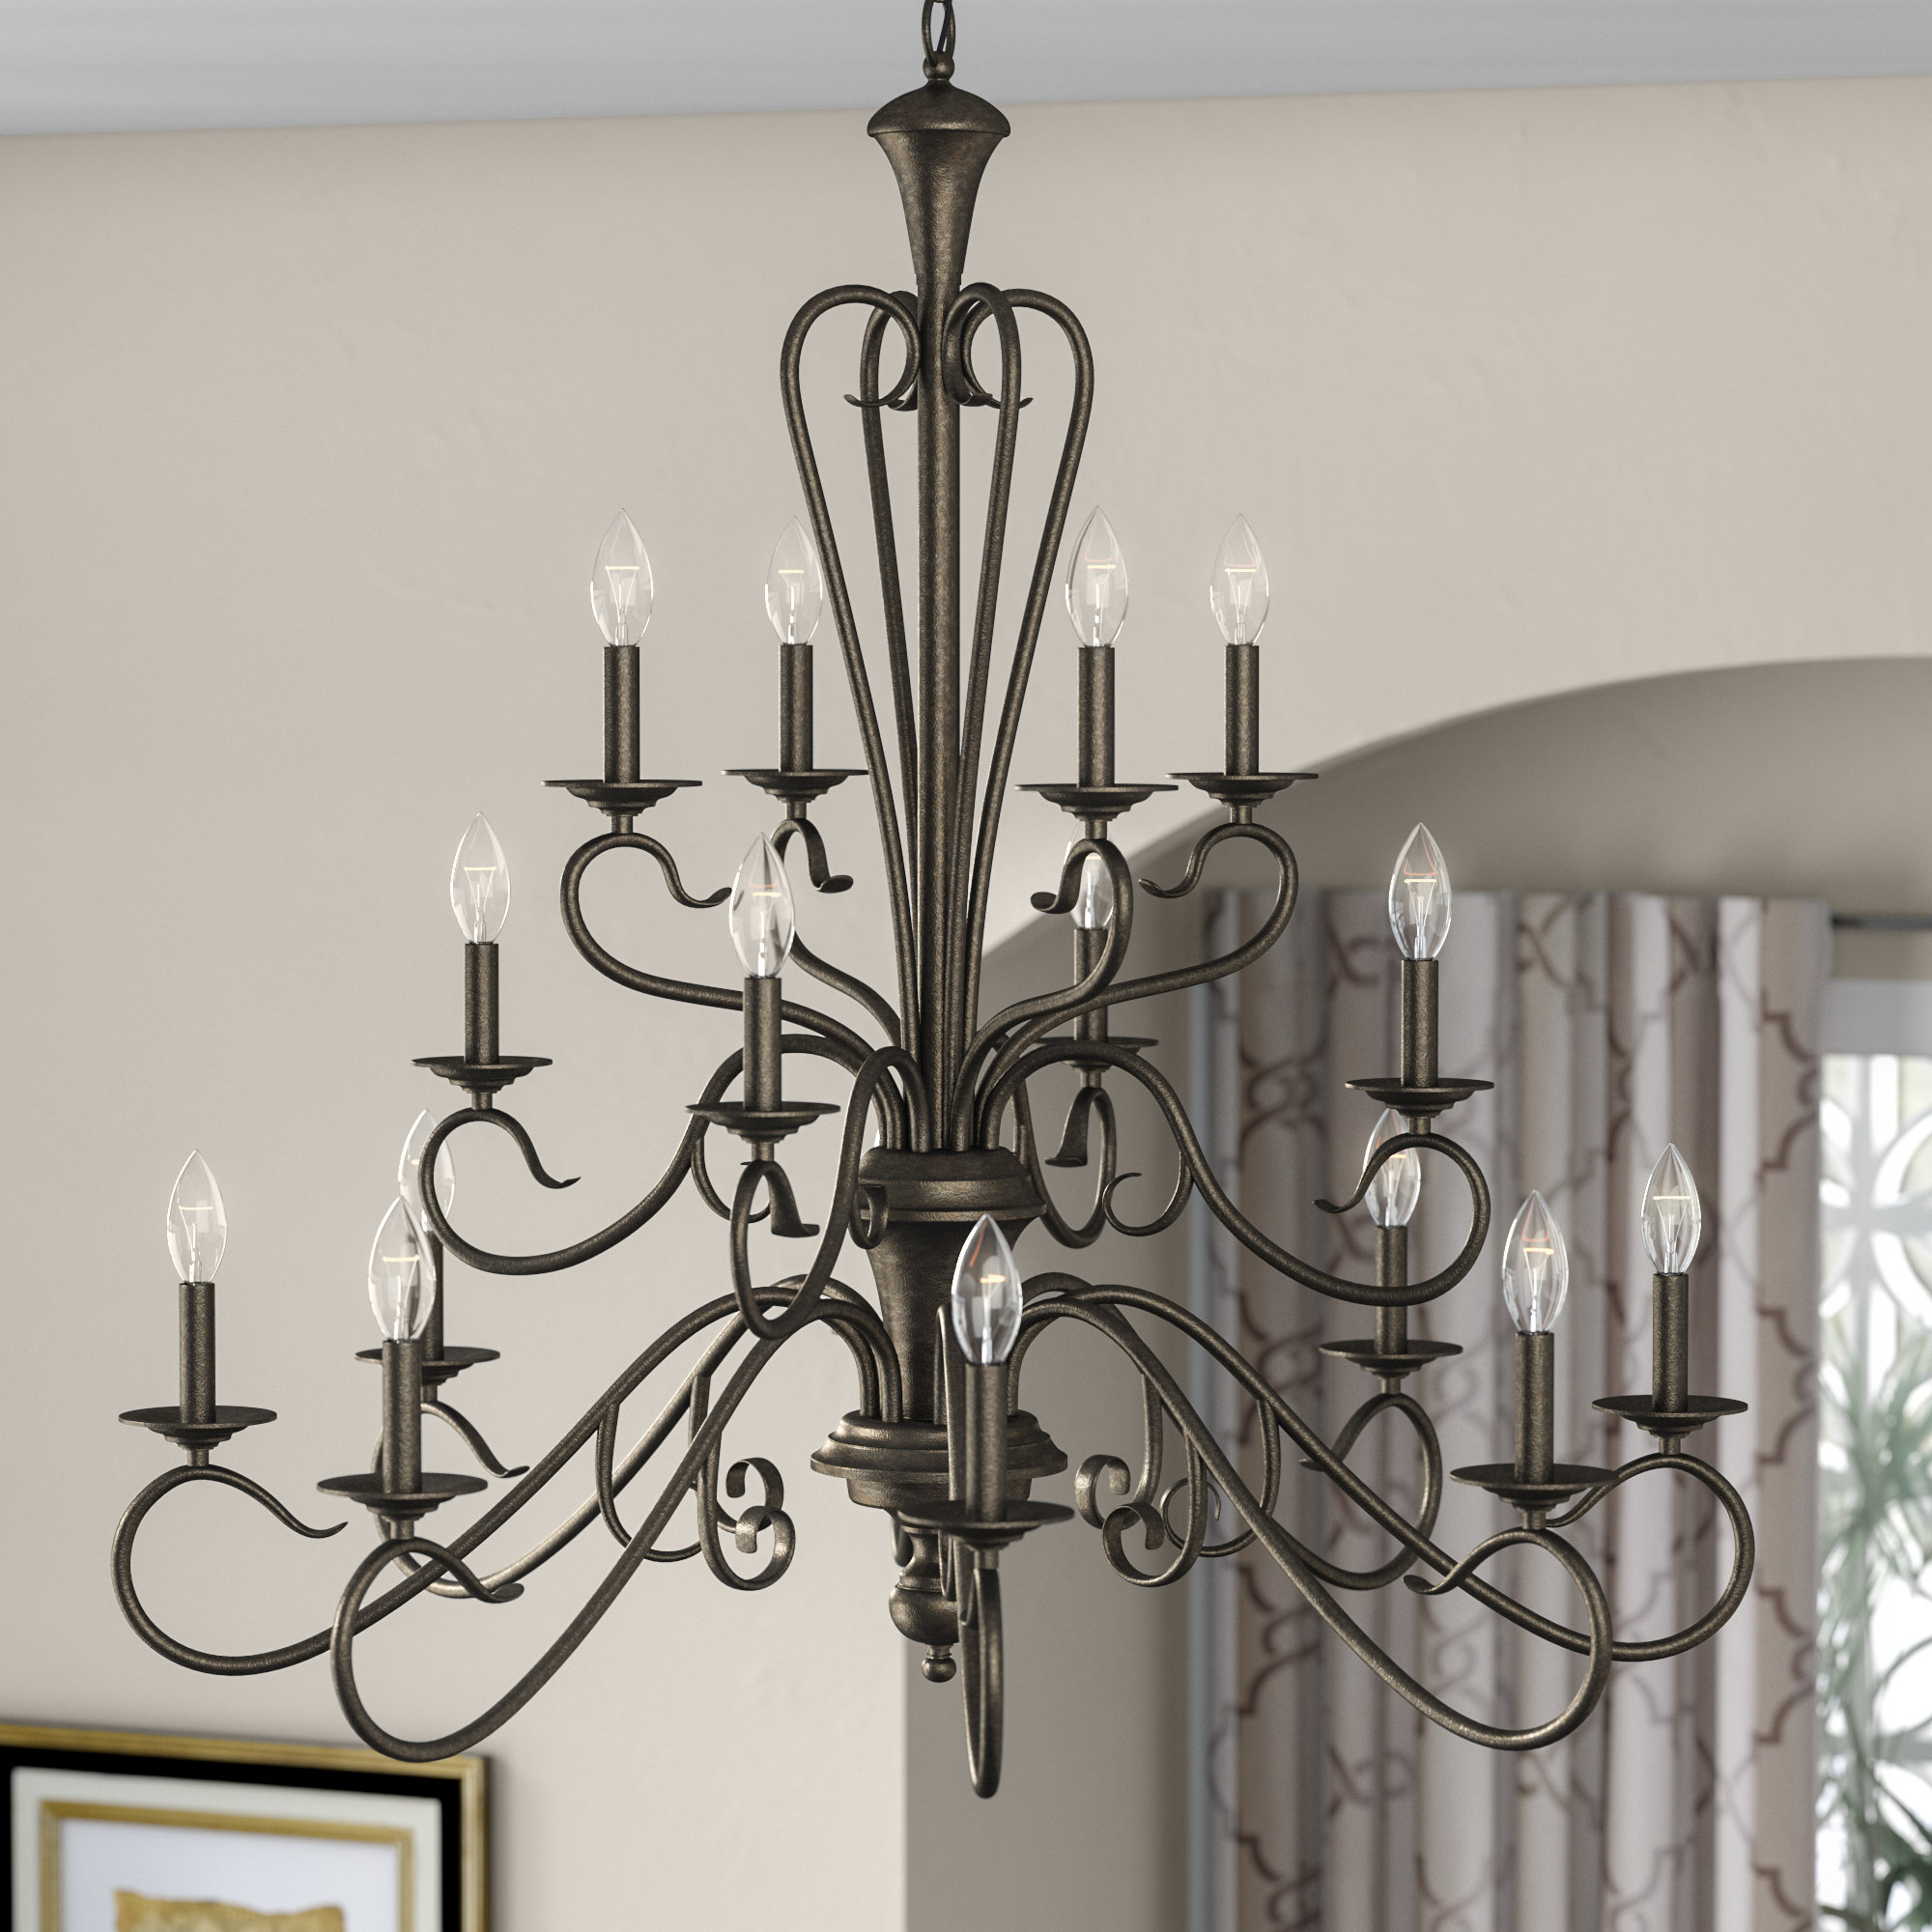 2020 Bouchette Traditional 6 Light Candle Style Chandeliers Pertaining To Birchview 16 Light Candle Style Chandelier (Gallery 20 of 20)